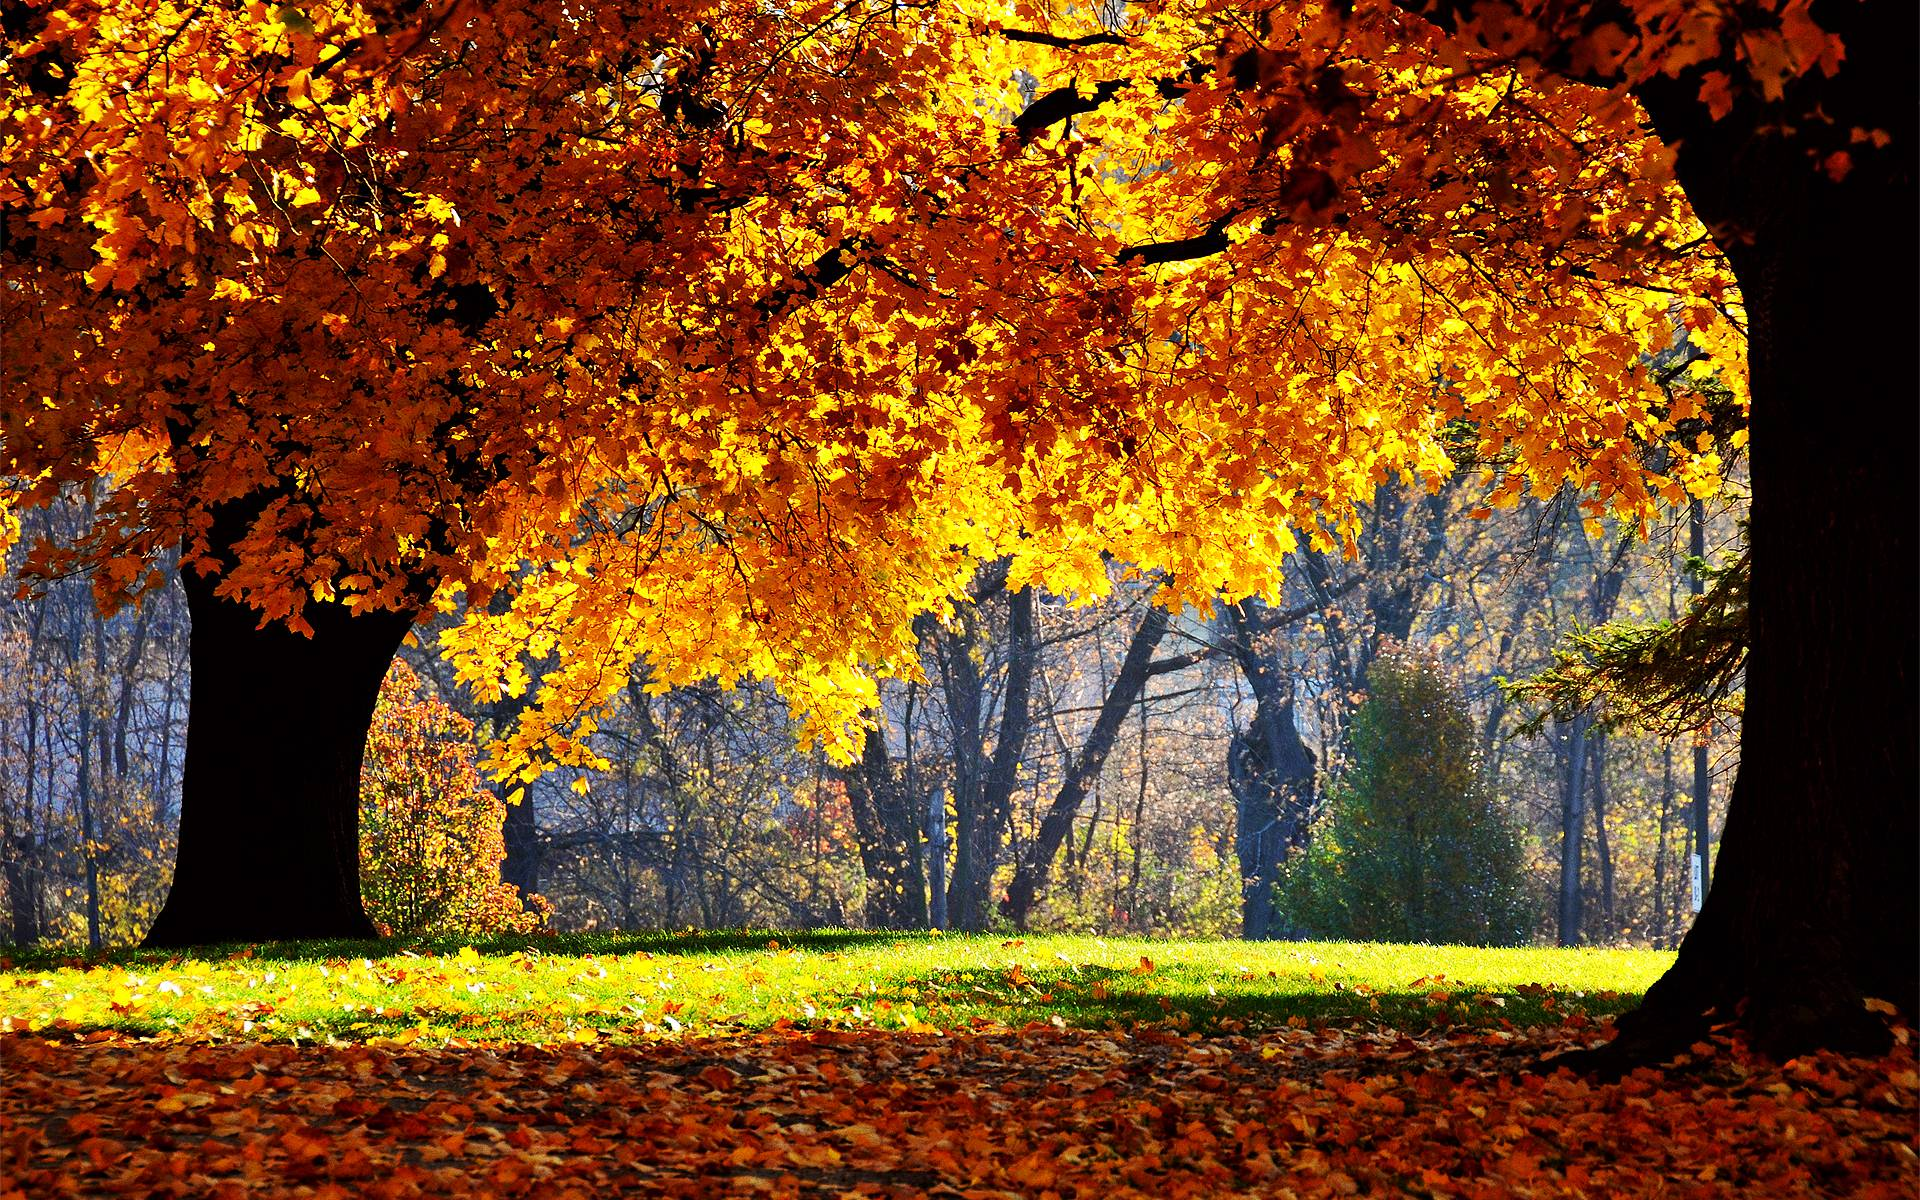 Free Autumn Desktop Wallpaper Backgrounds